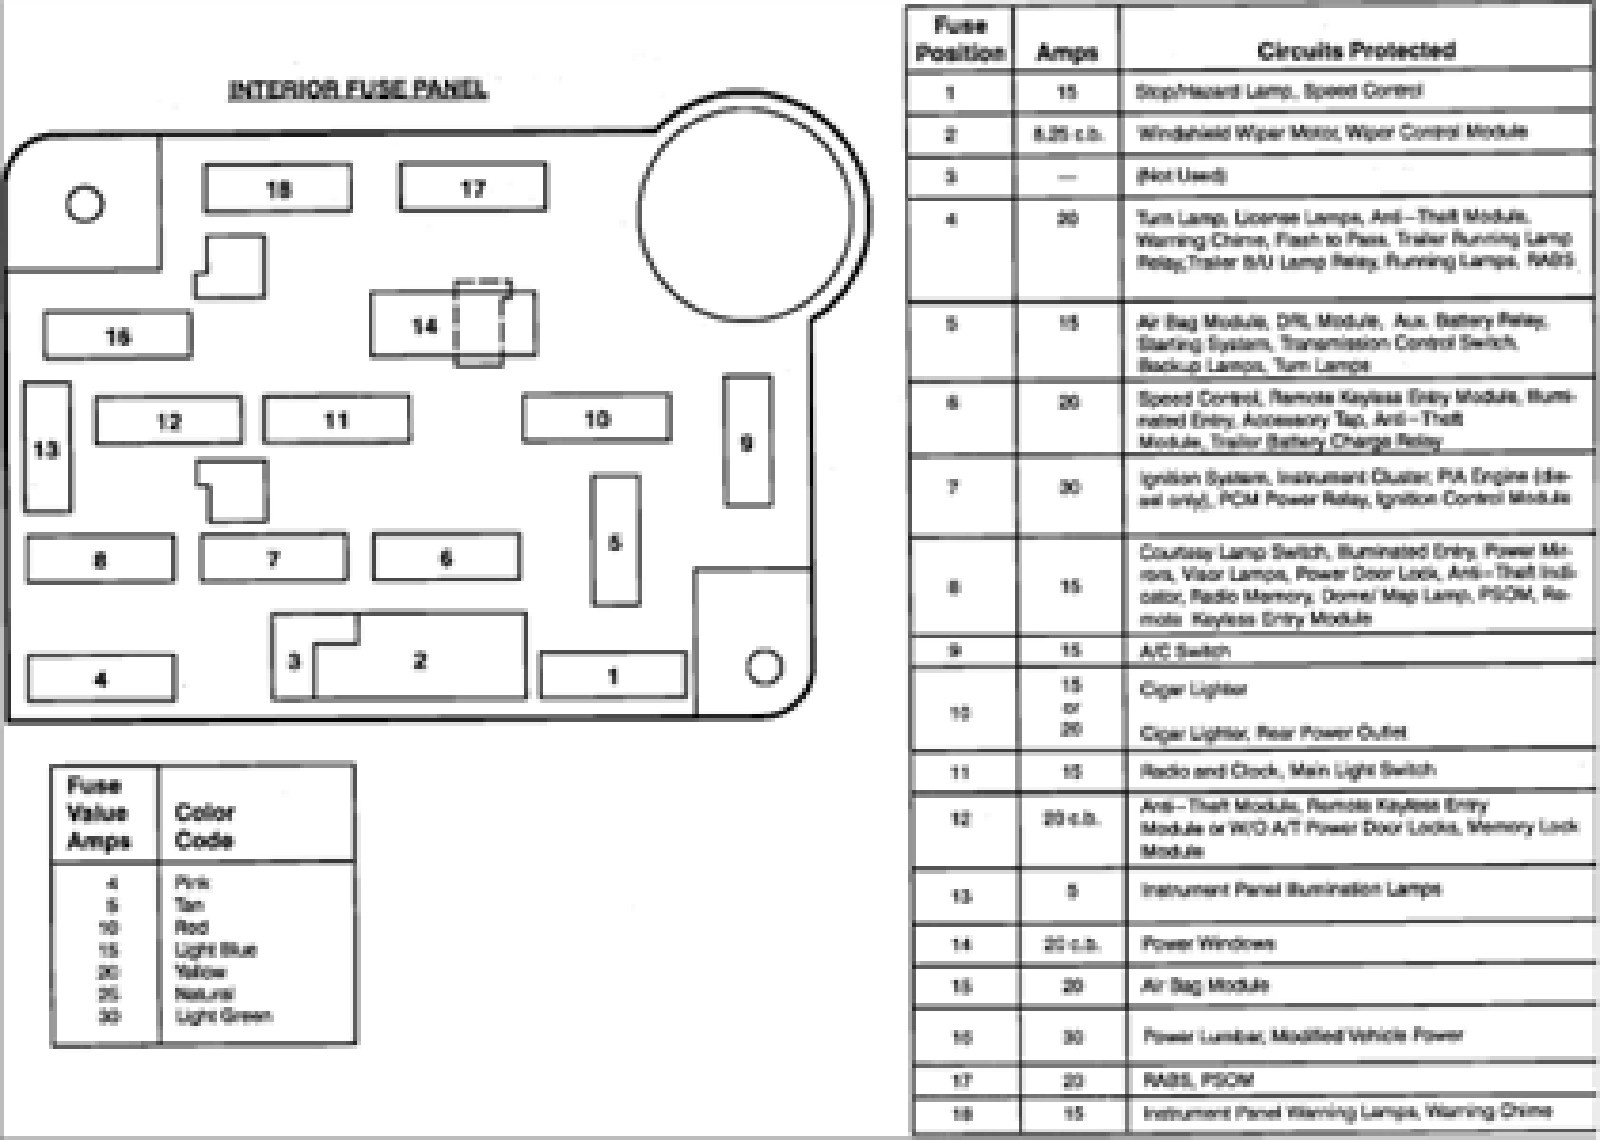 hight resolution of ford e 150 questions fuse diagram for a 1993 ford econoline van rh cargurus com 1993 ford econoline wiring diagram 1993 ford e150 fuse box diagram